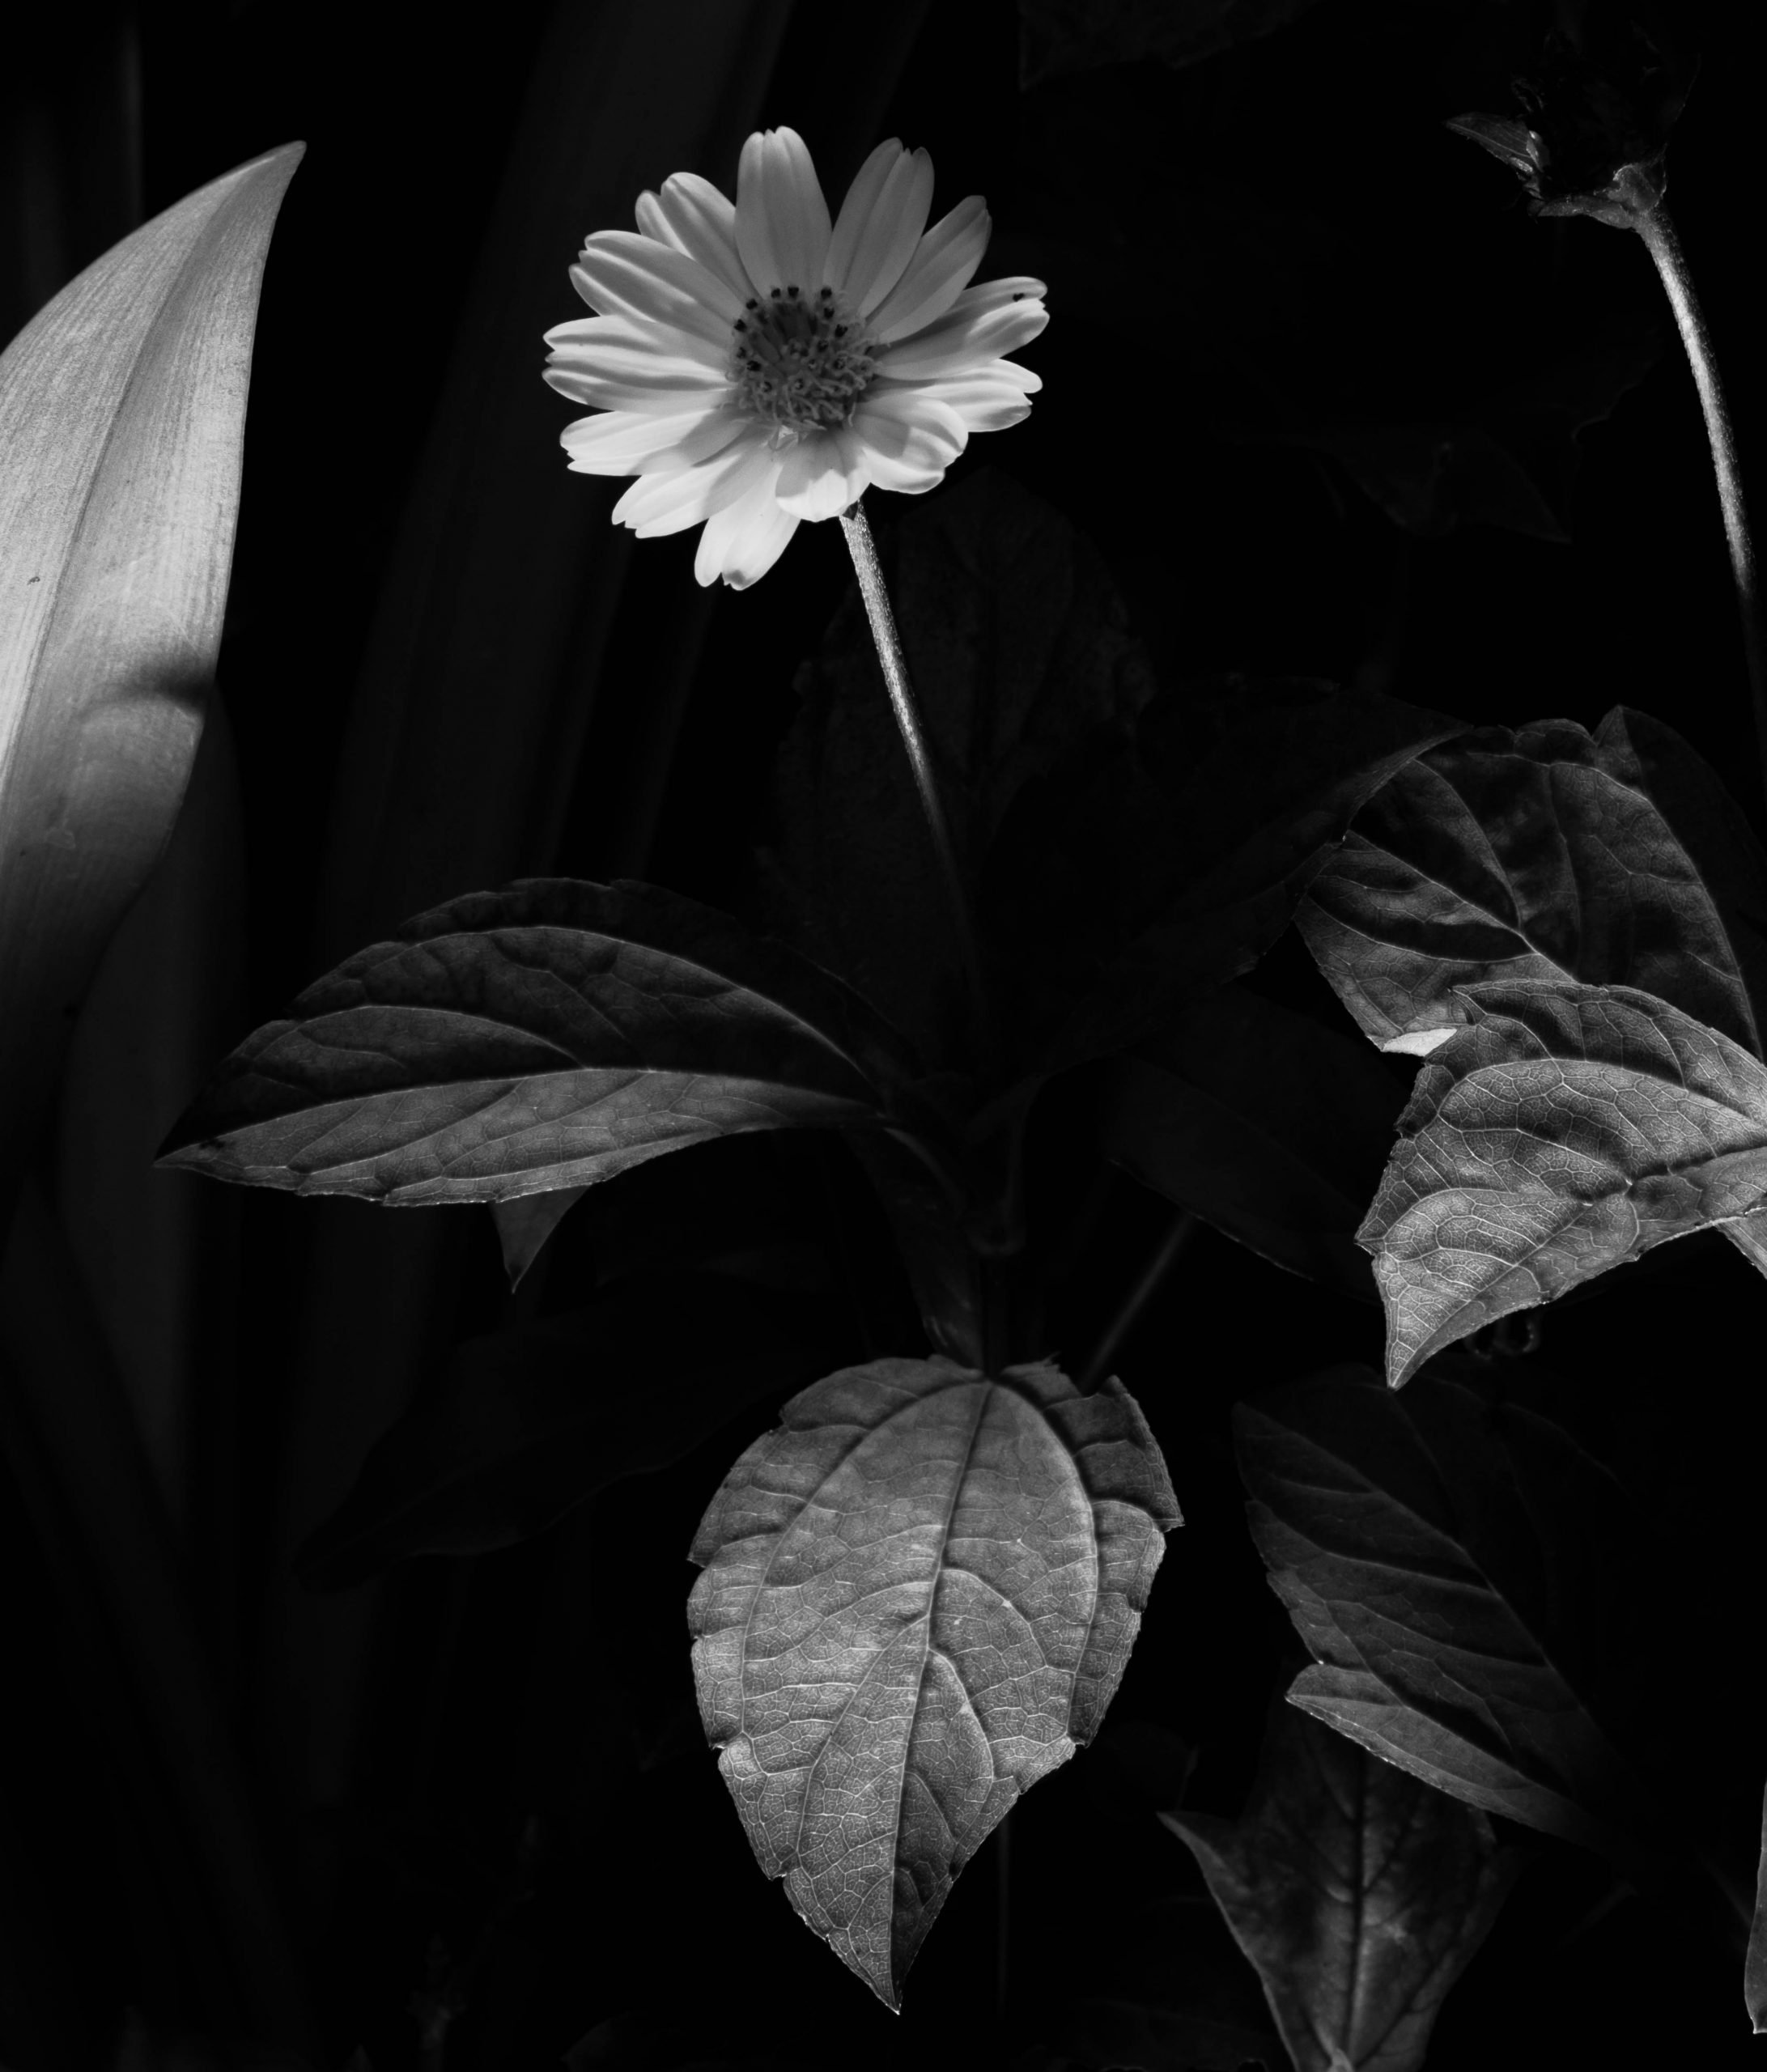 A black & white photograph of a flower.